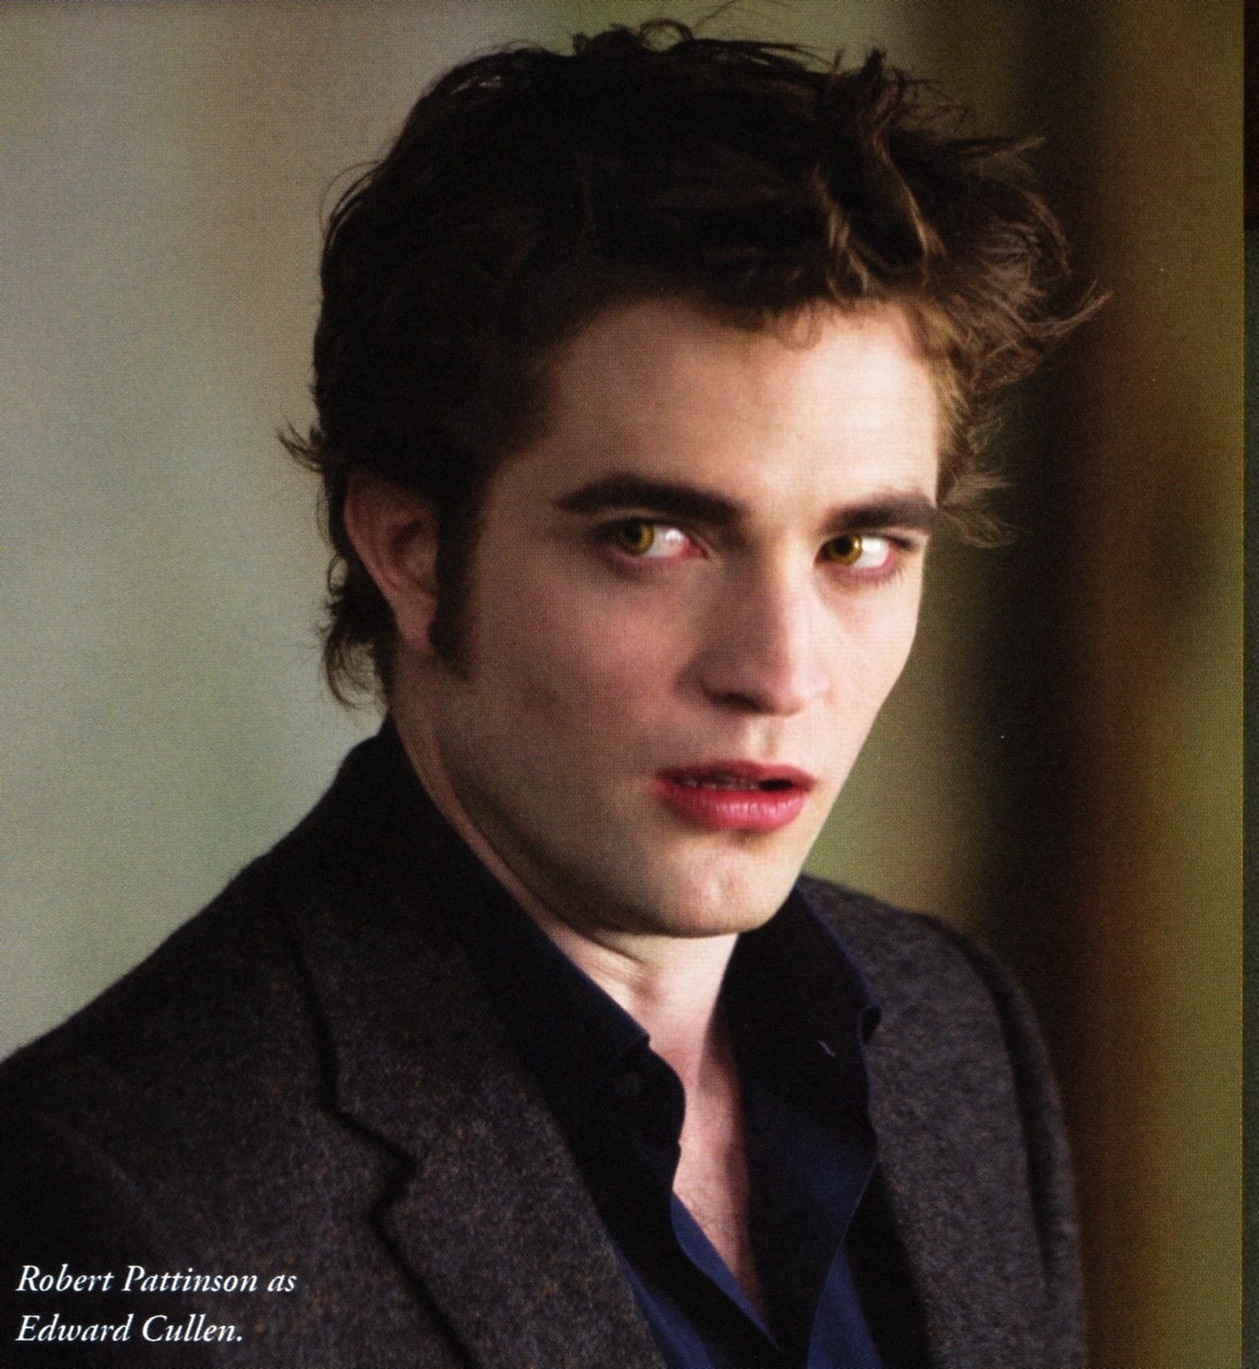 Edward cullen twilighters photo 16561774 fanpop for Twilight edward photos